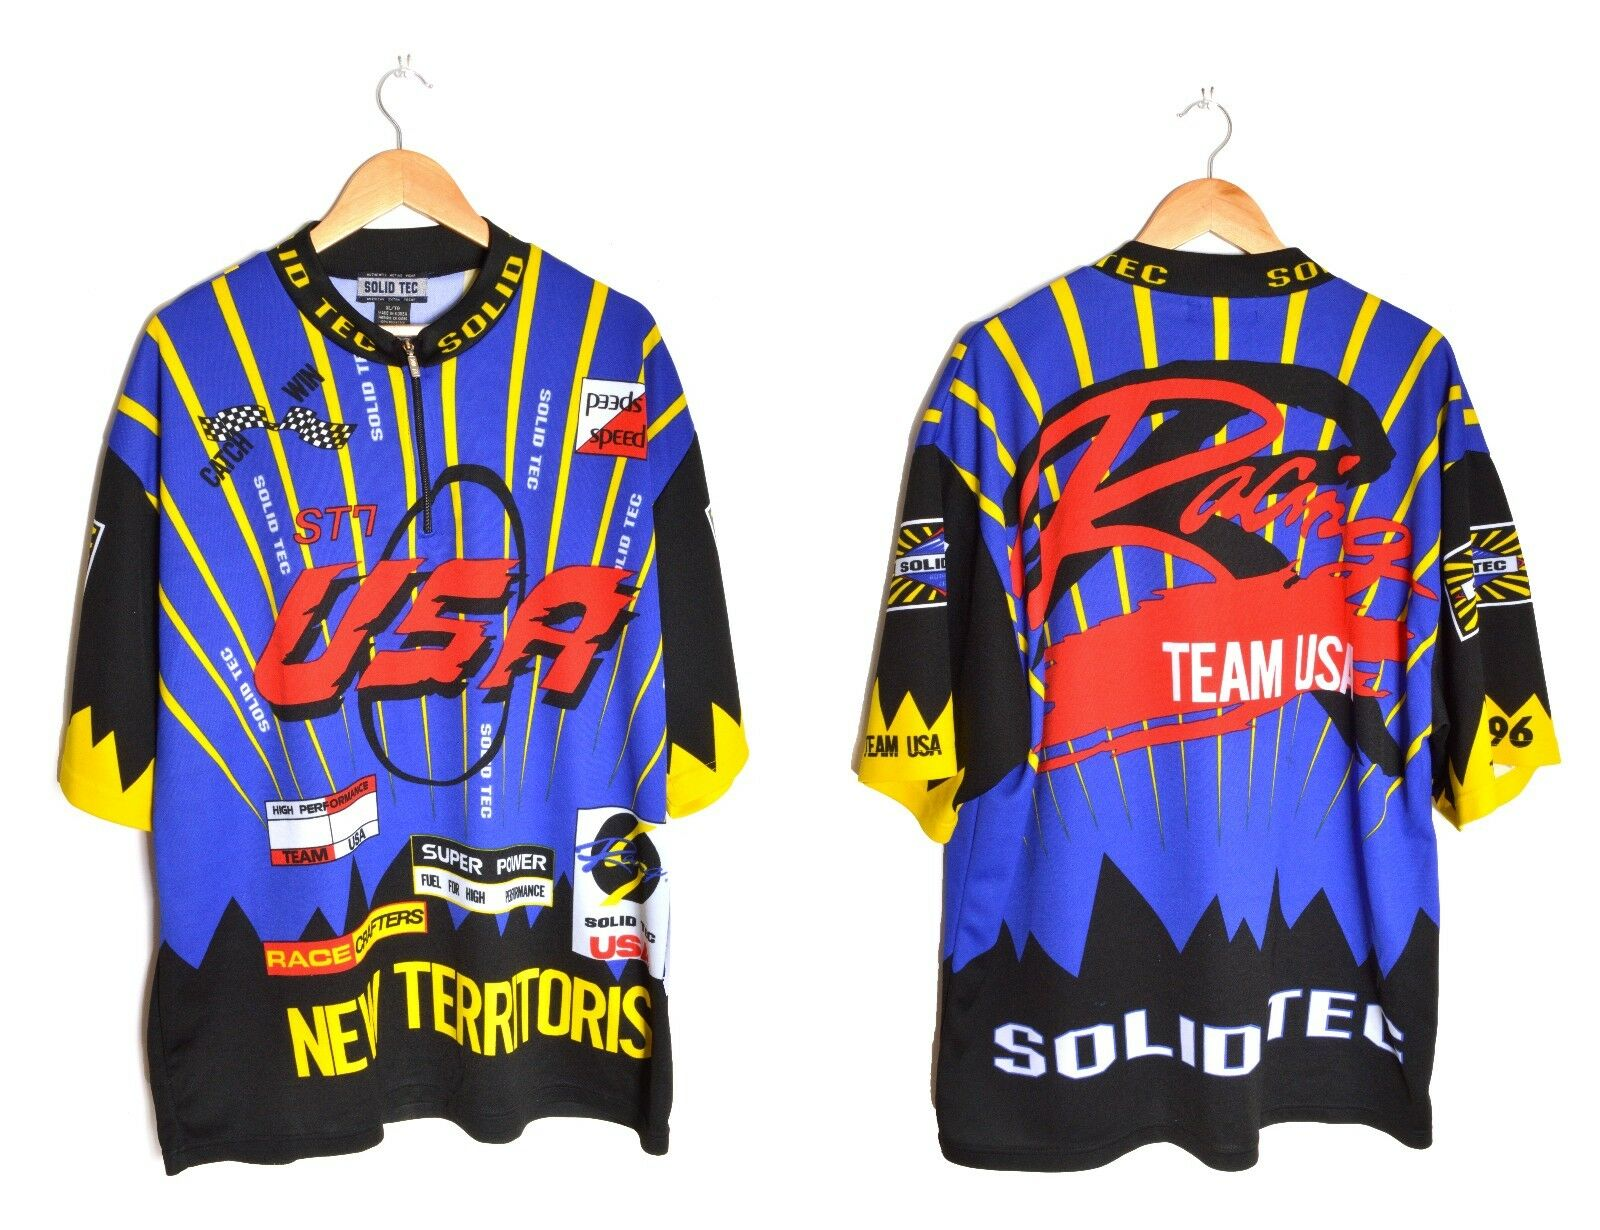 Team USA Cycling Jersey Race Graphic Shirt Half Zip Solid  Tec 1996 Olympic Sz XL  store